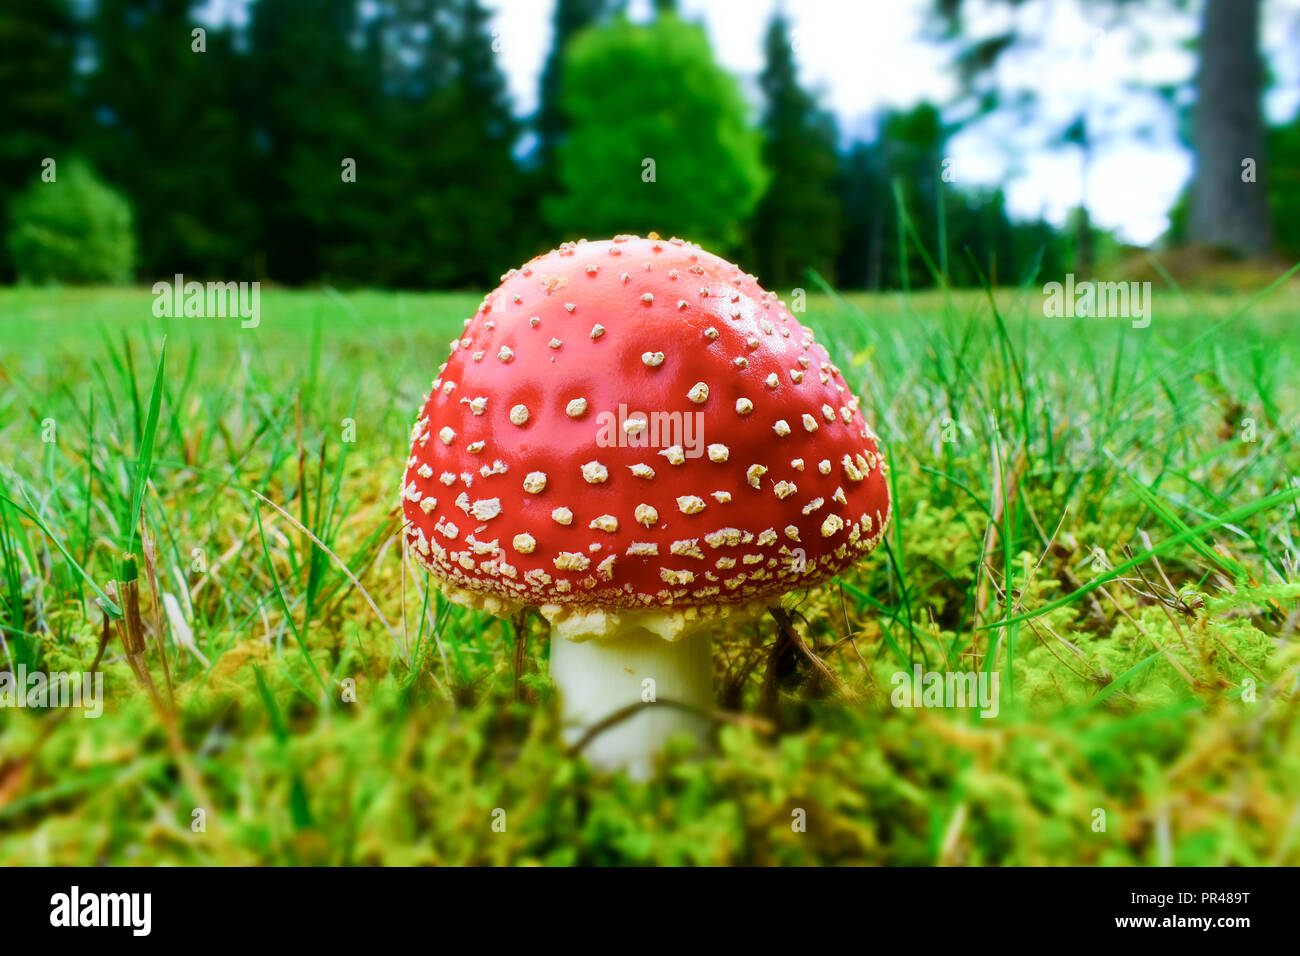 Amanita muscaria, commonly known as the fly agaric or fly amanita, is a basidiomycete mushroom, one of many in the genus Amanita. Stock Photo